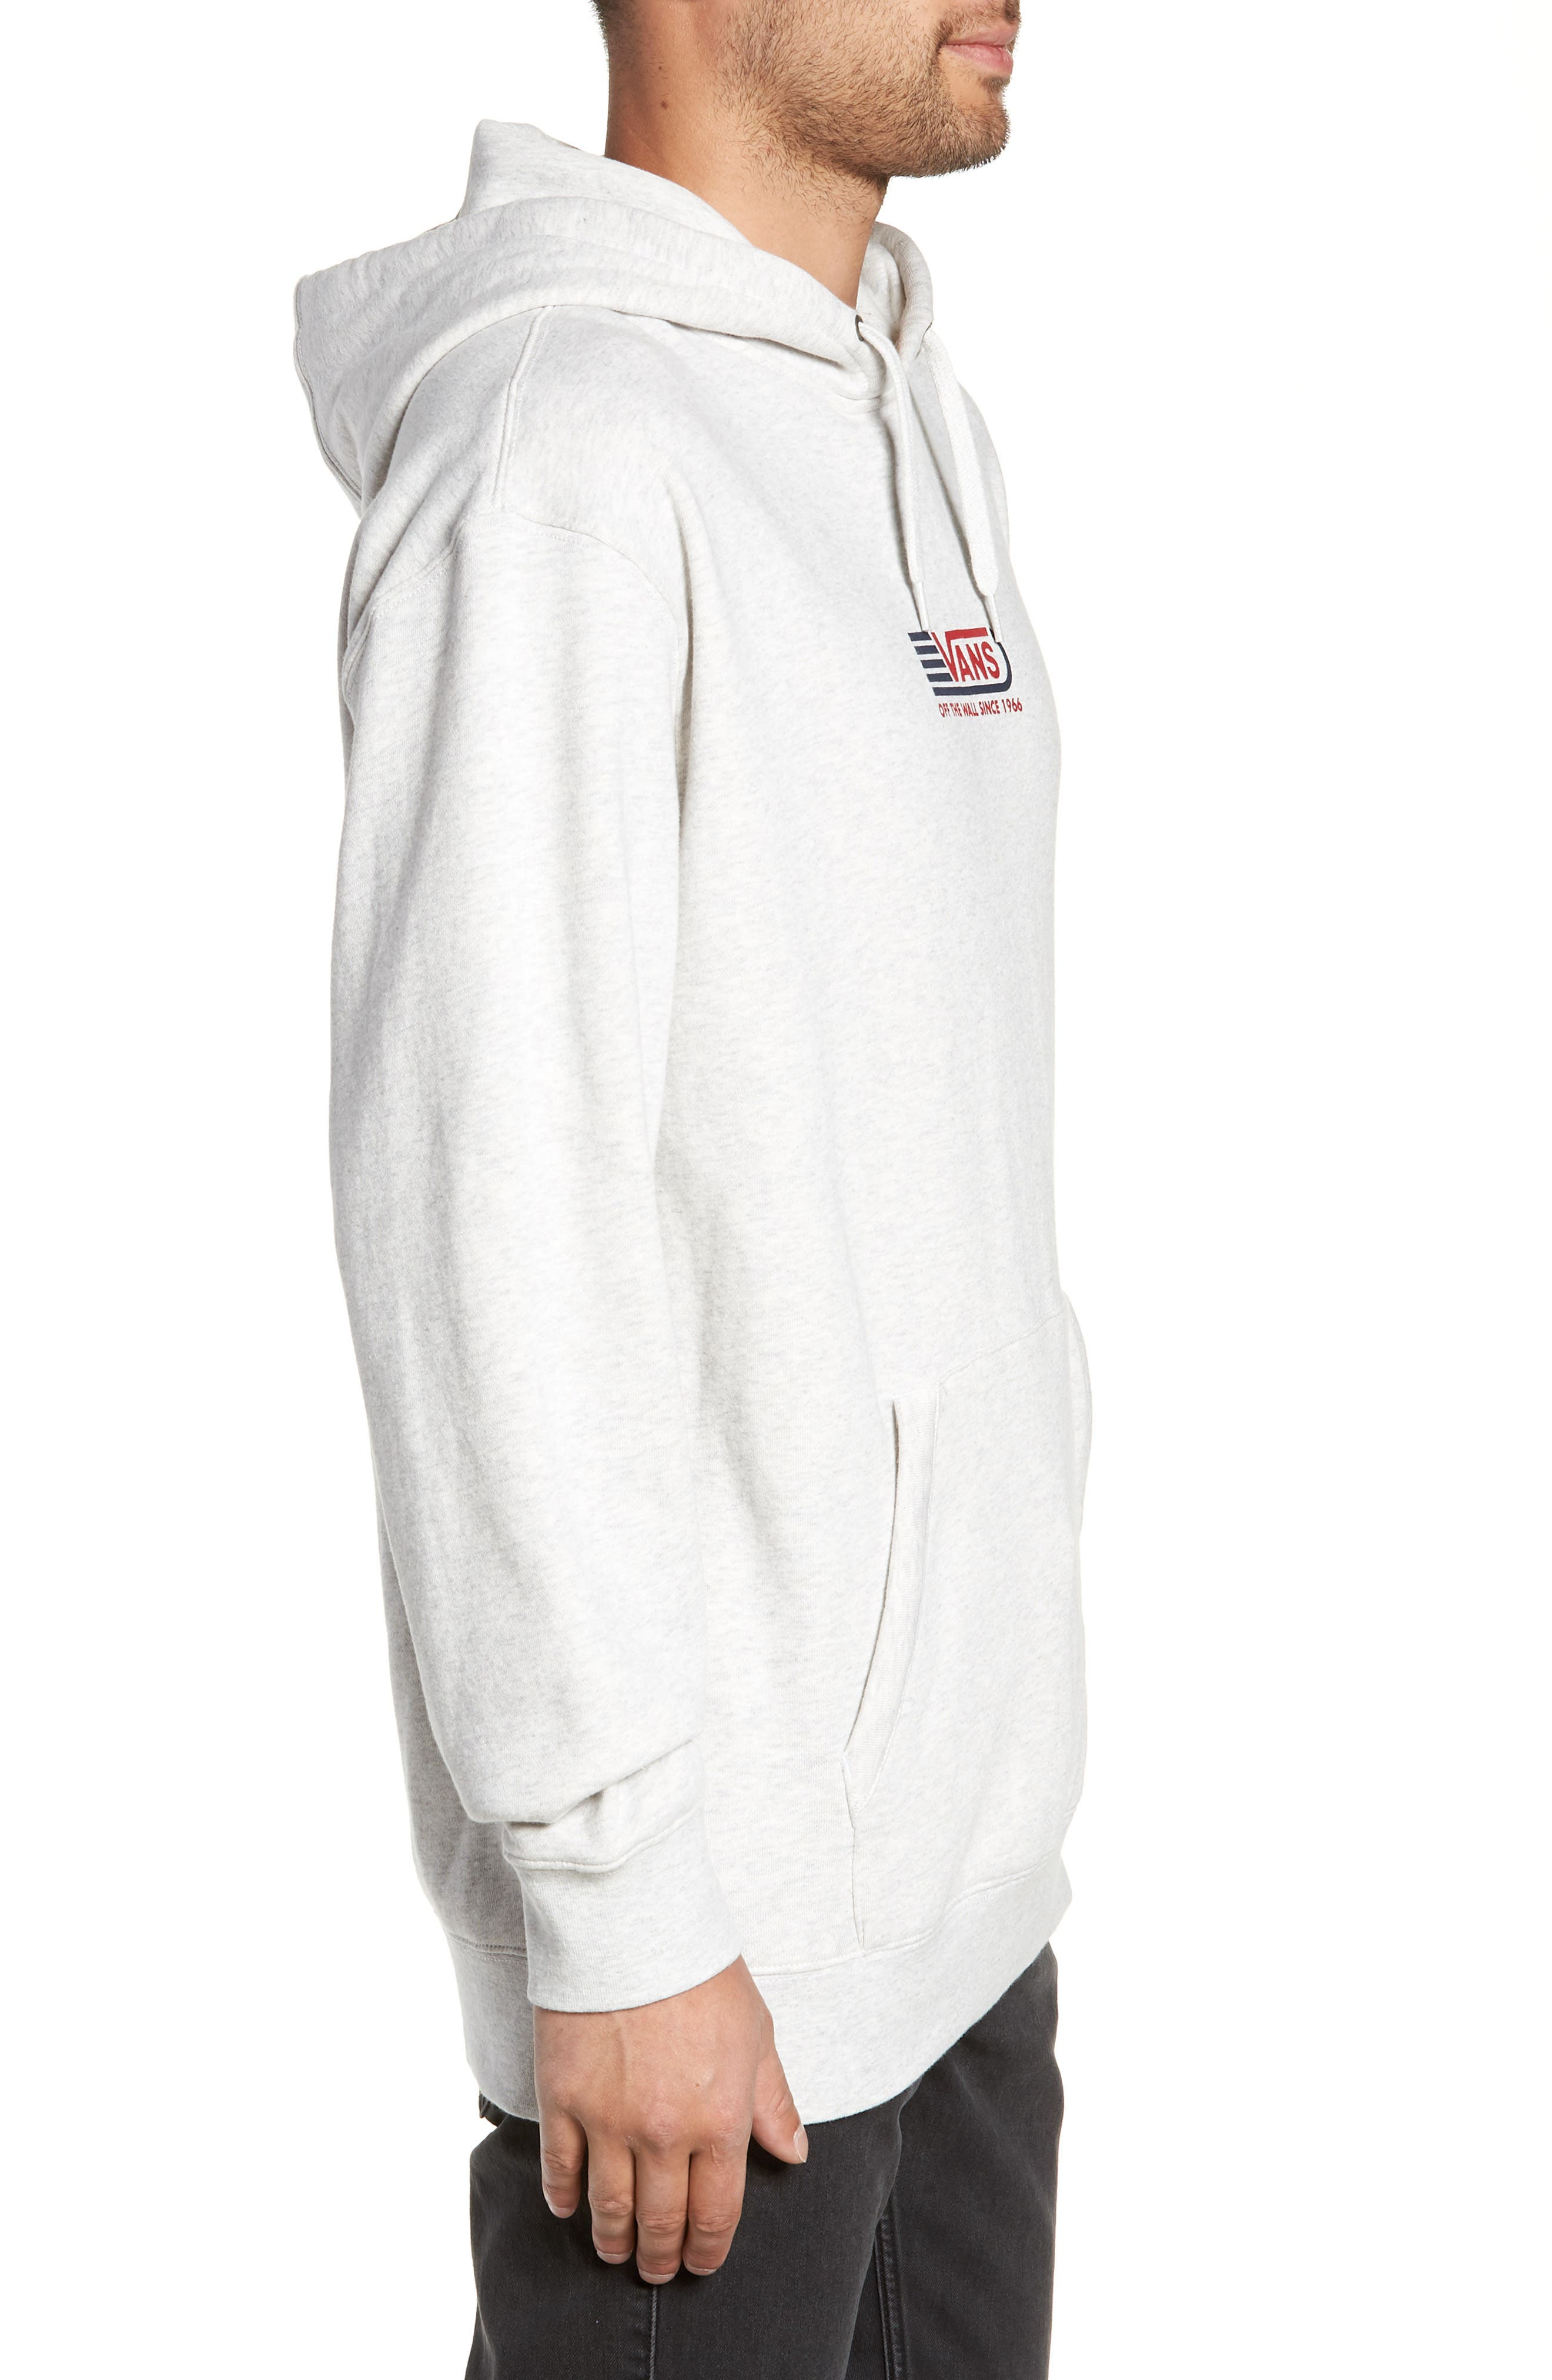 Blendline Oversize Pullover Hoodie,                             Alternate thumbnail 3, color,                             WHITE HEATHER